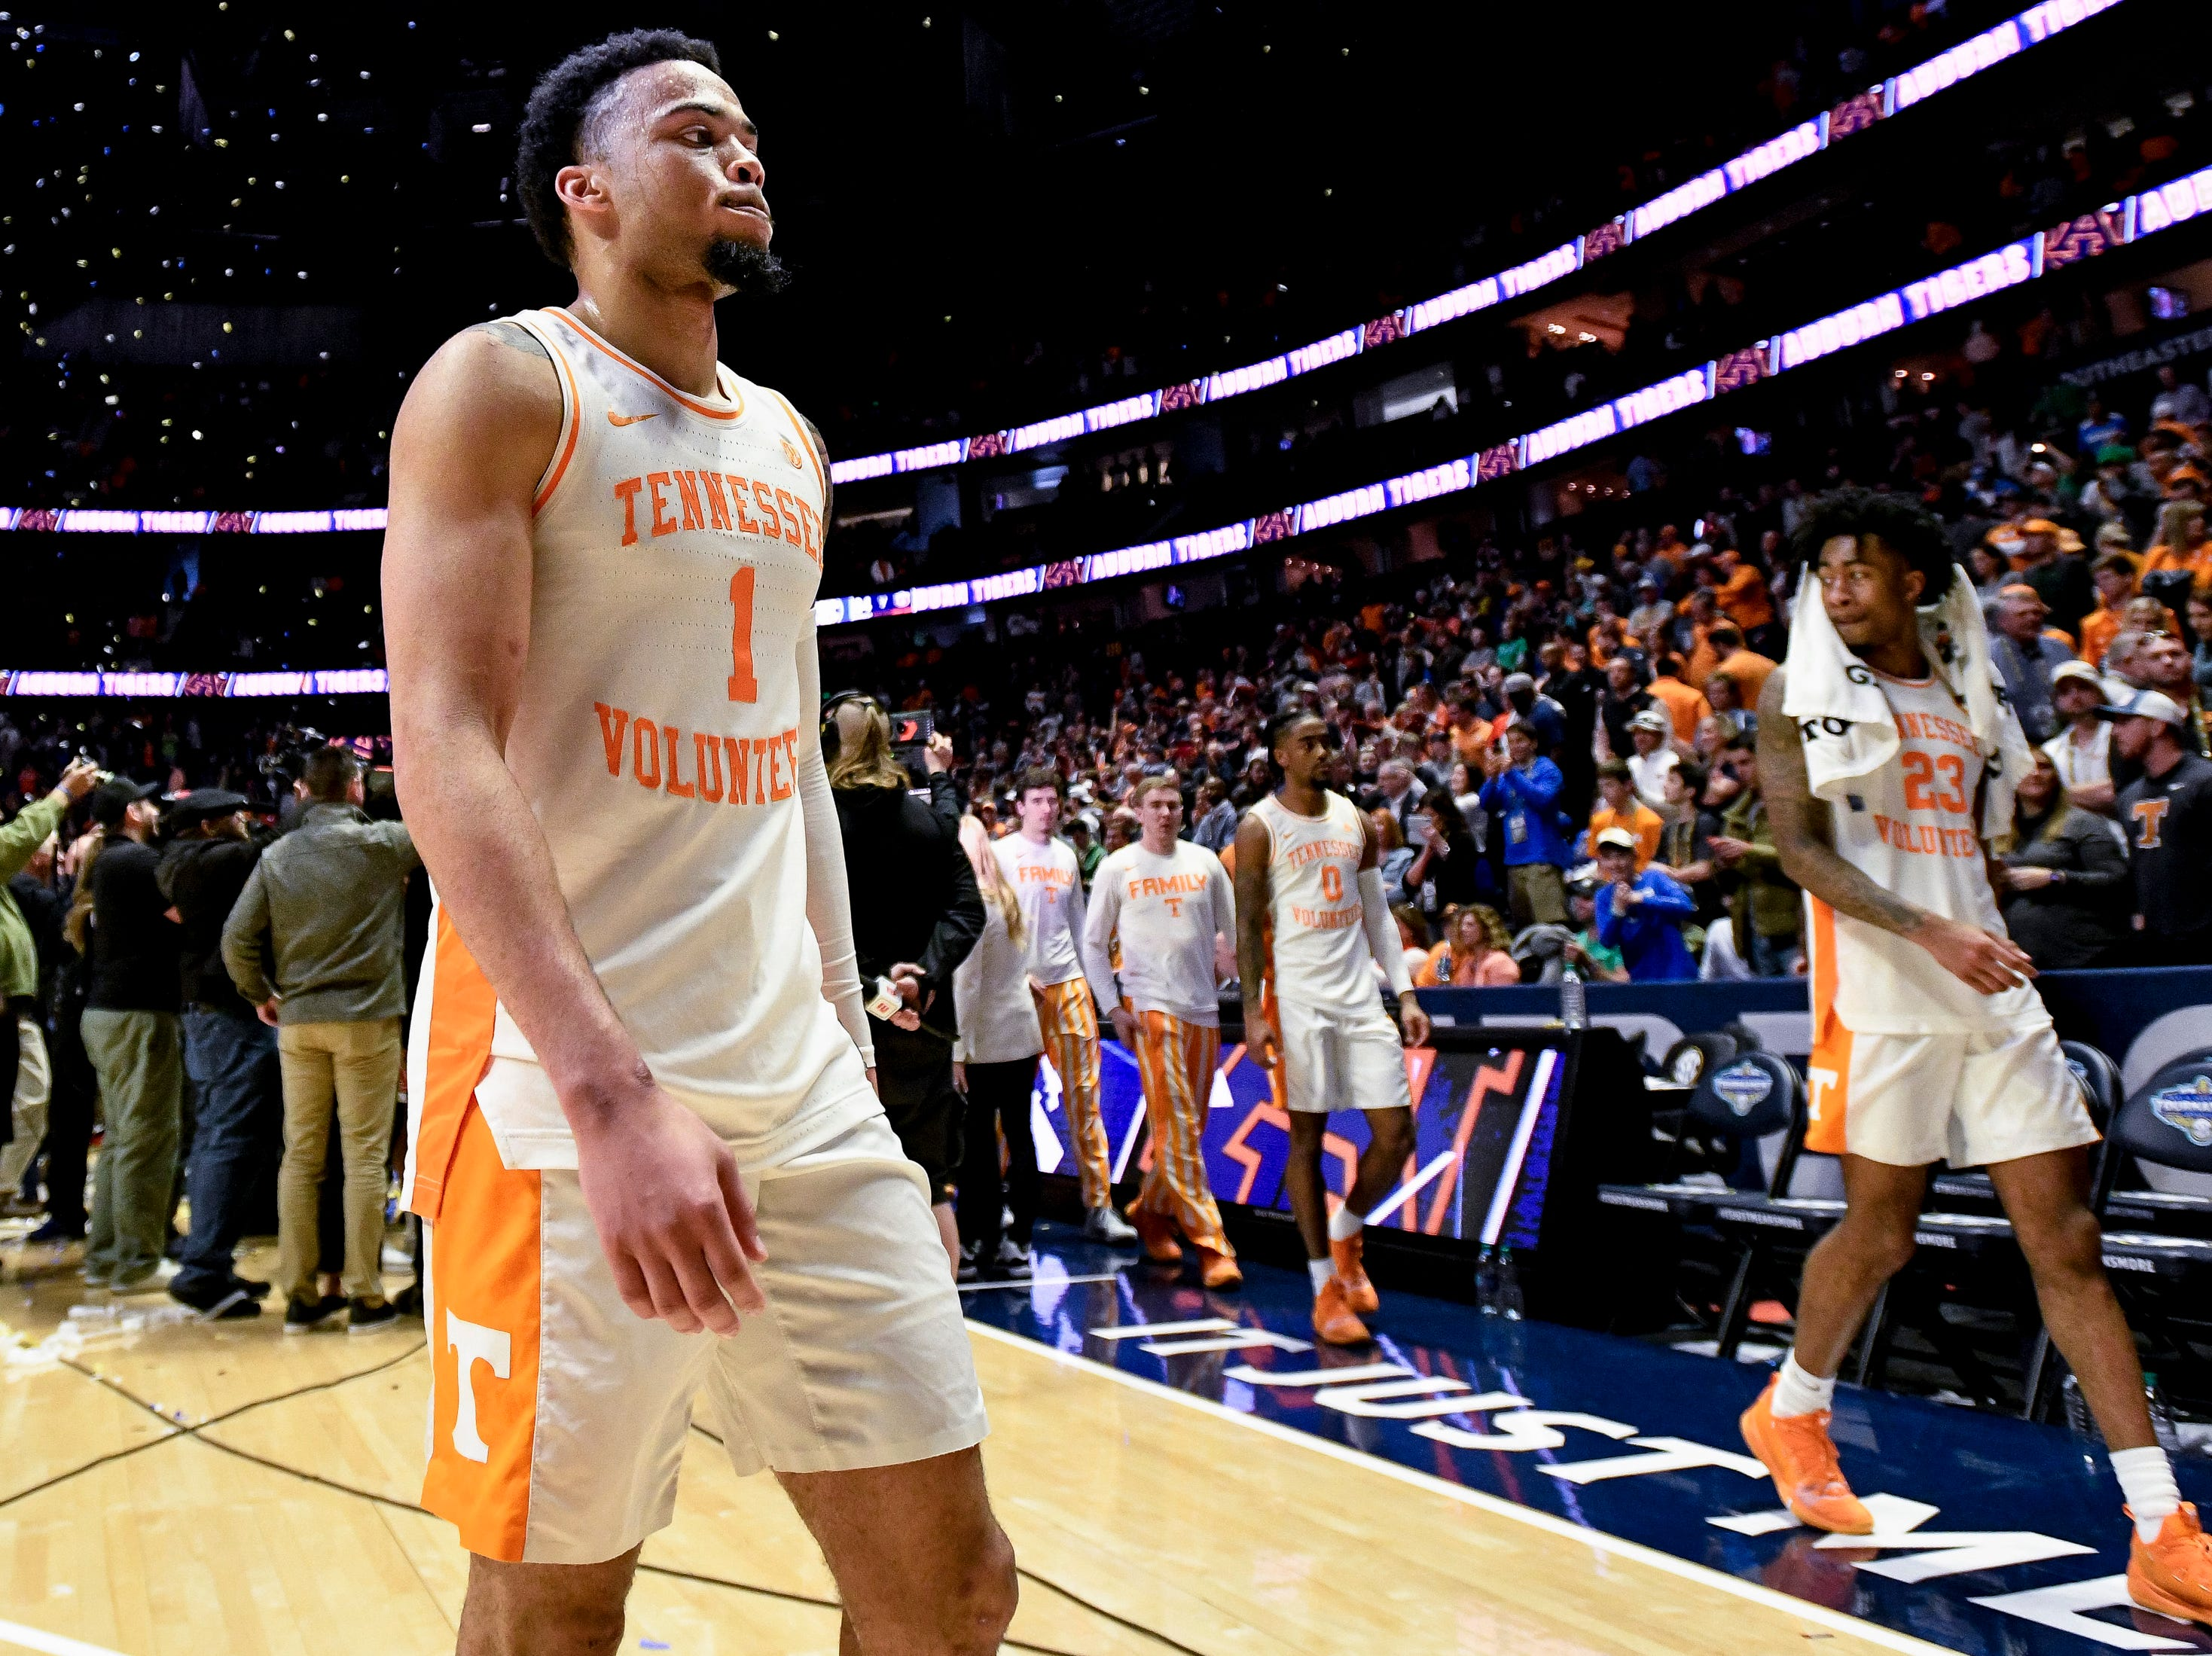 Tennessee guard Lamonte Turner (1) exits the court after their SEC Men's Basketball Tournament championship loss to Auburn at Bridgestone Arena in Nashville, Tenn., Sunday, March 17, 2019.